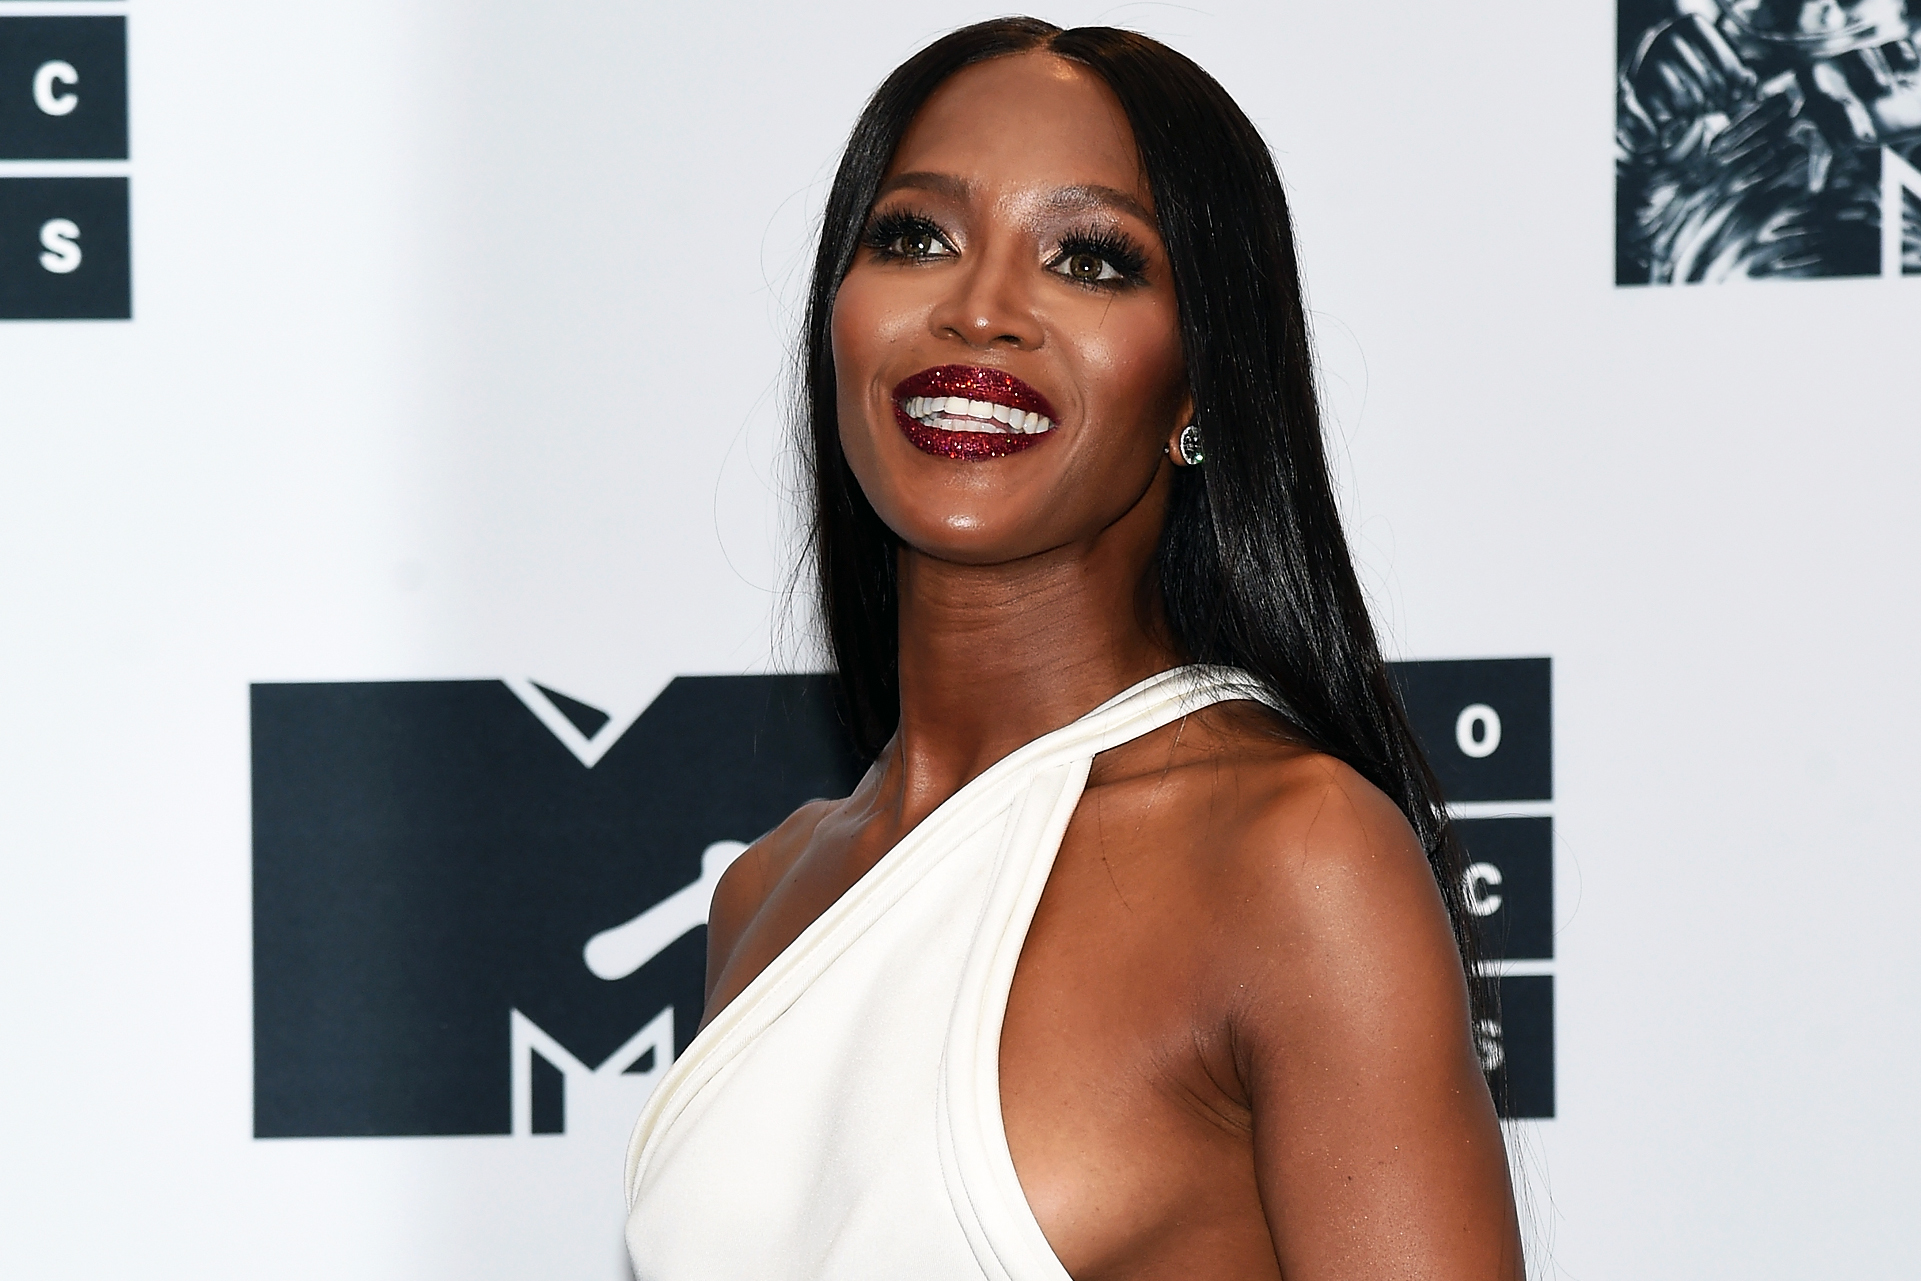 NEW YORK, NY - AUGUST 28: Naomi Campbell attends the Press Room at the 2016 MTV Video Music Awards at Madison Square Garden on August 28, 2016 in New York City. (Photo by Jamie McCarthy/Getty Images)